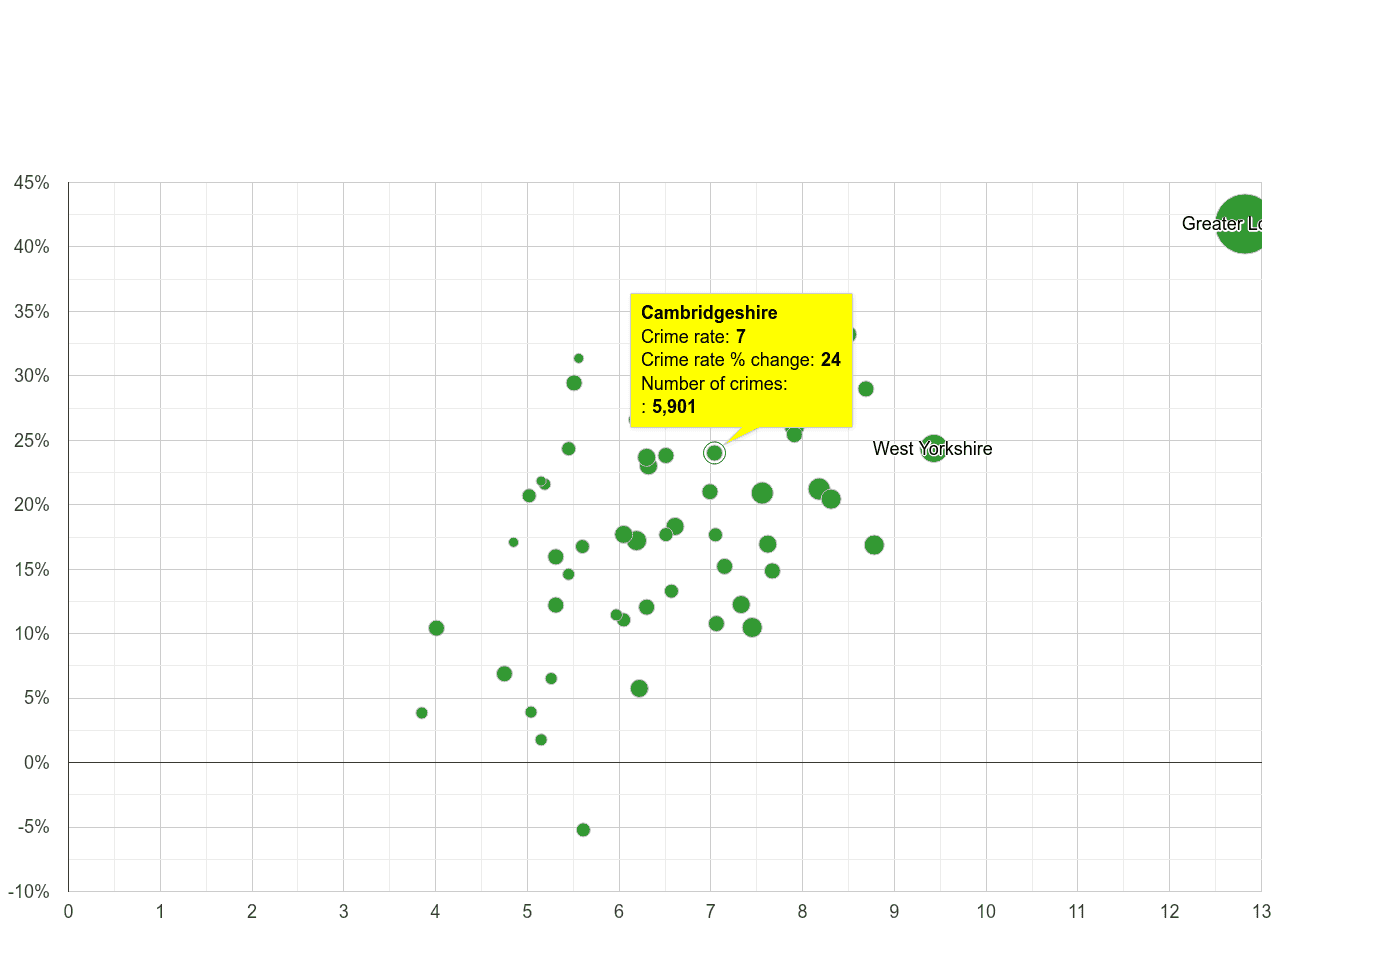 Cambridgeshire other theft crime rate compared to other counties